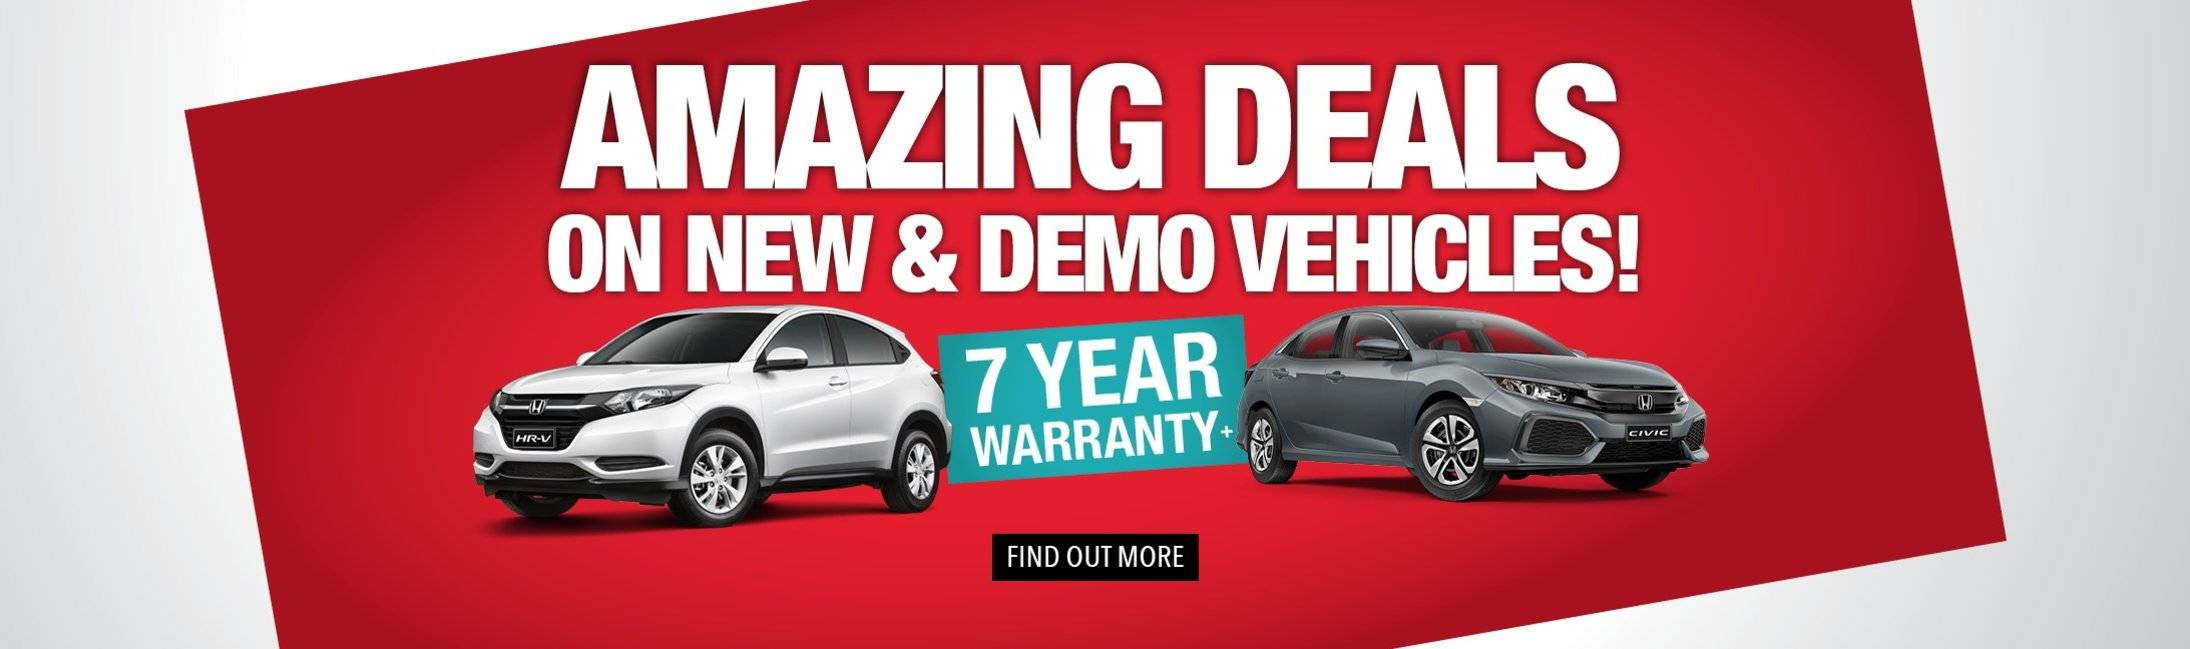 AMAZING DEALS ON NEW AND DEMO VEHICLES